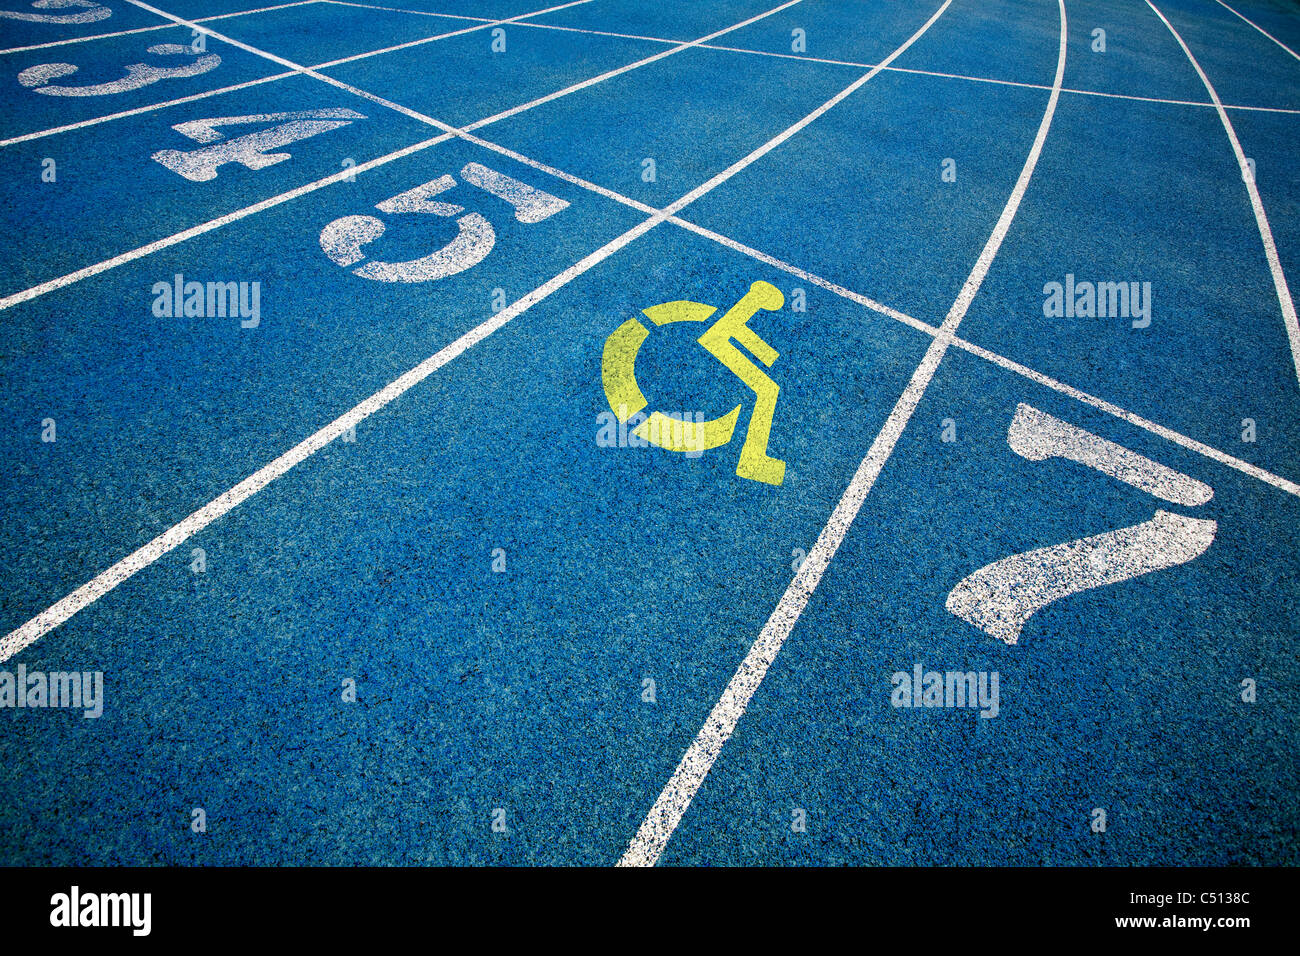 Handicap wheelchair icon superimposed on top of running track. Stock Photo